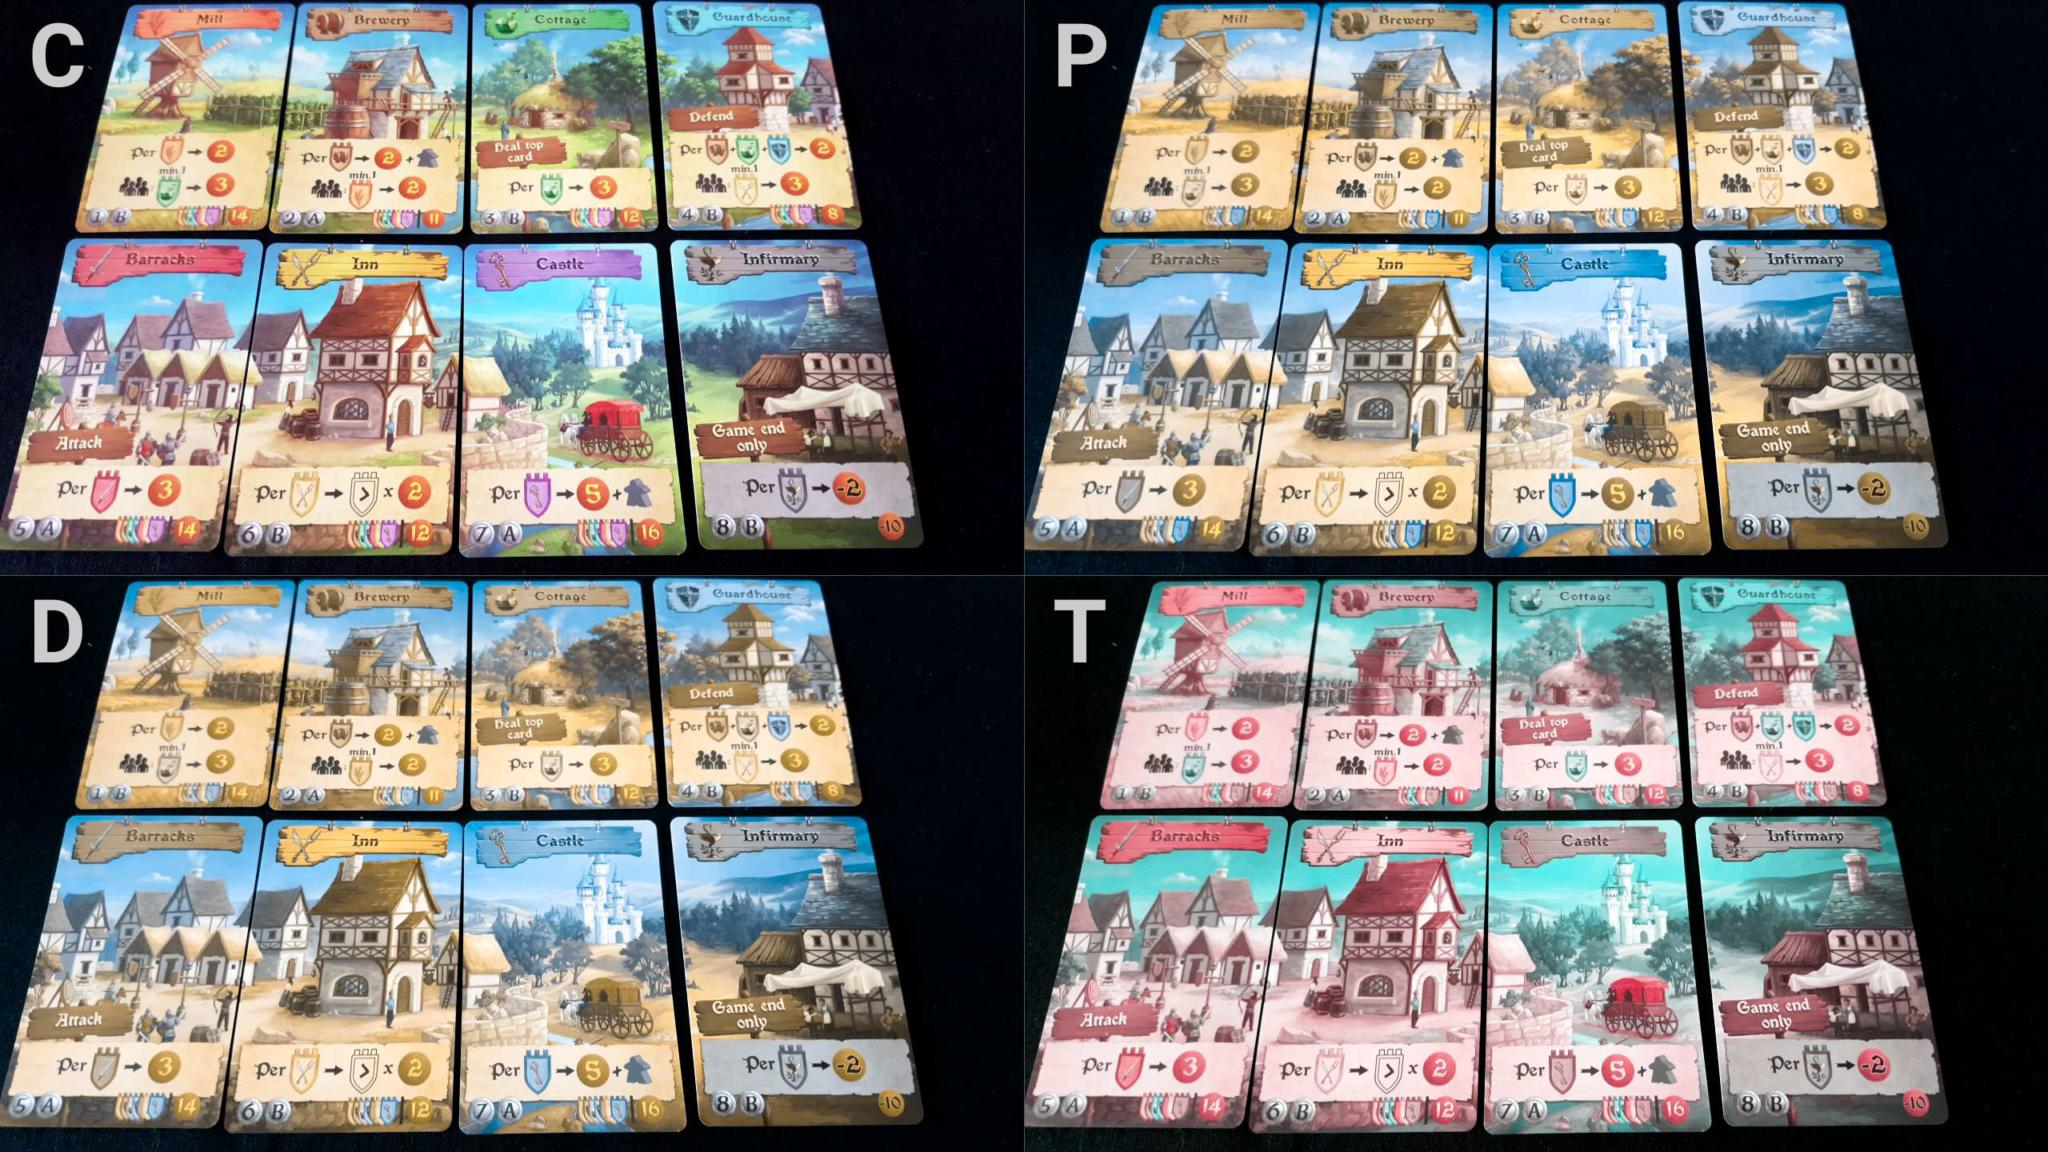 Colour blindness and cards in Majesty